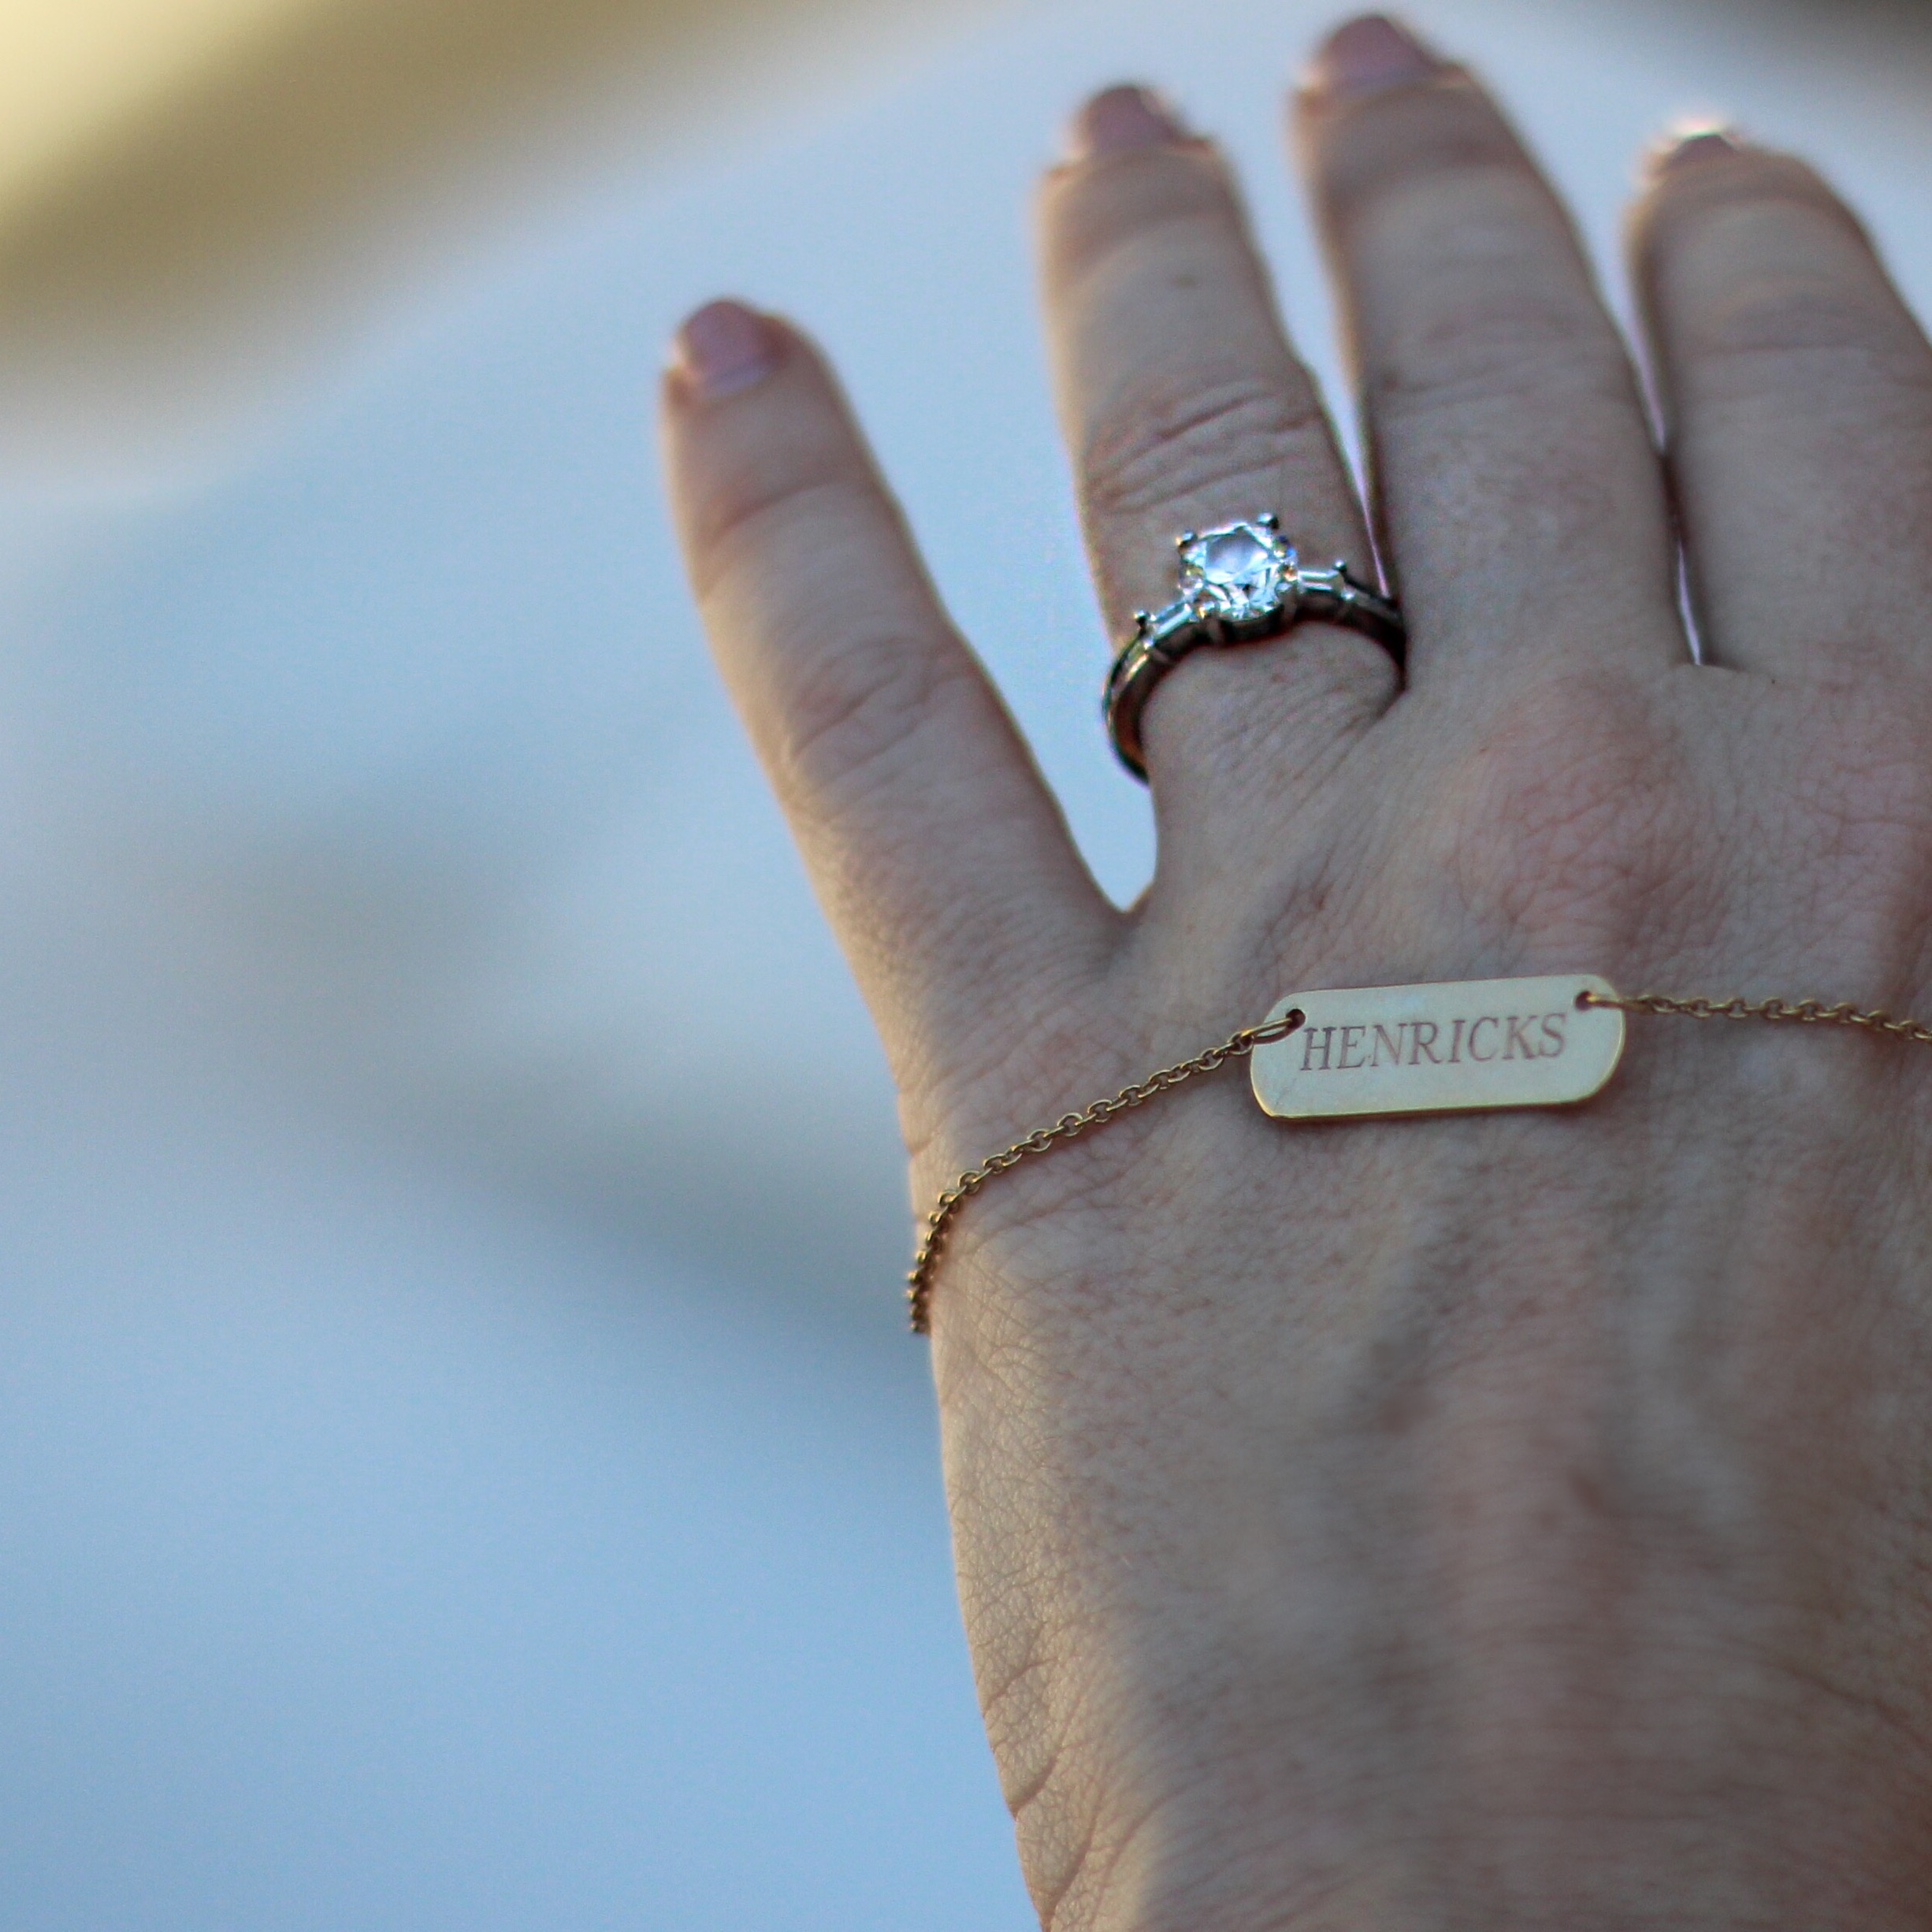 My new nameplate necklace with my future husband's last name!